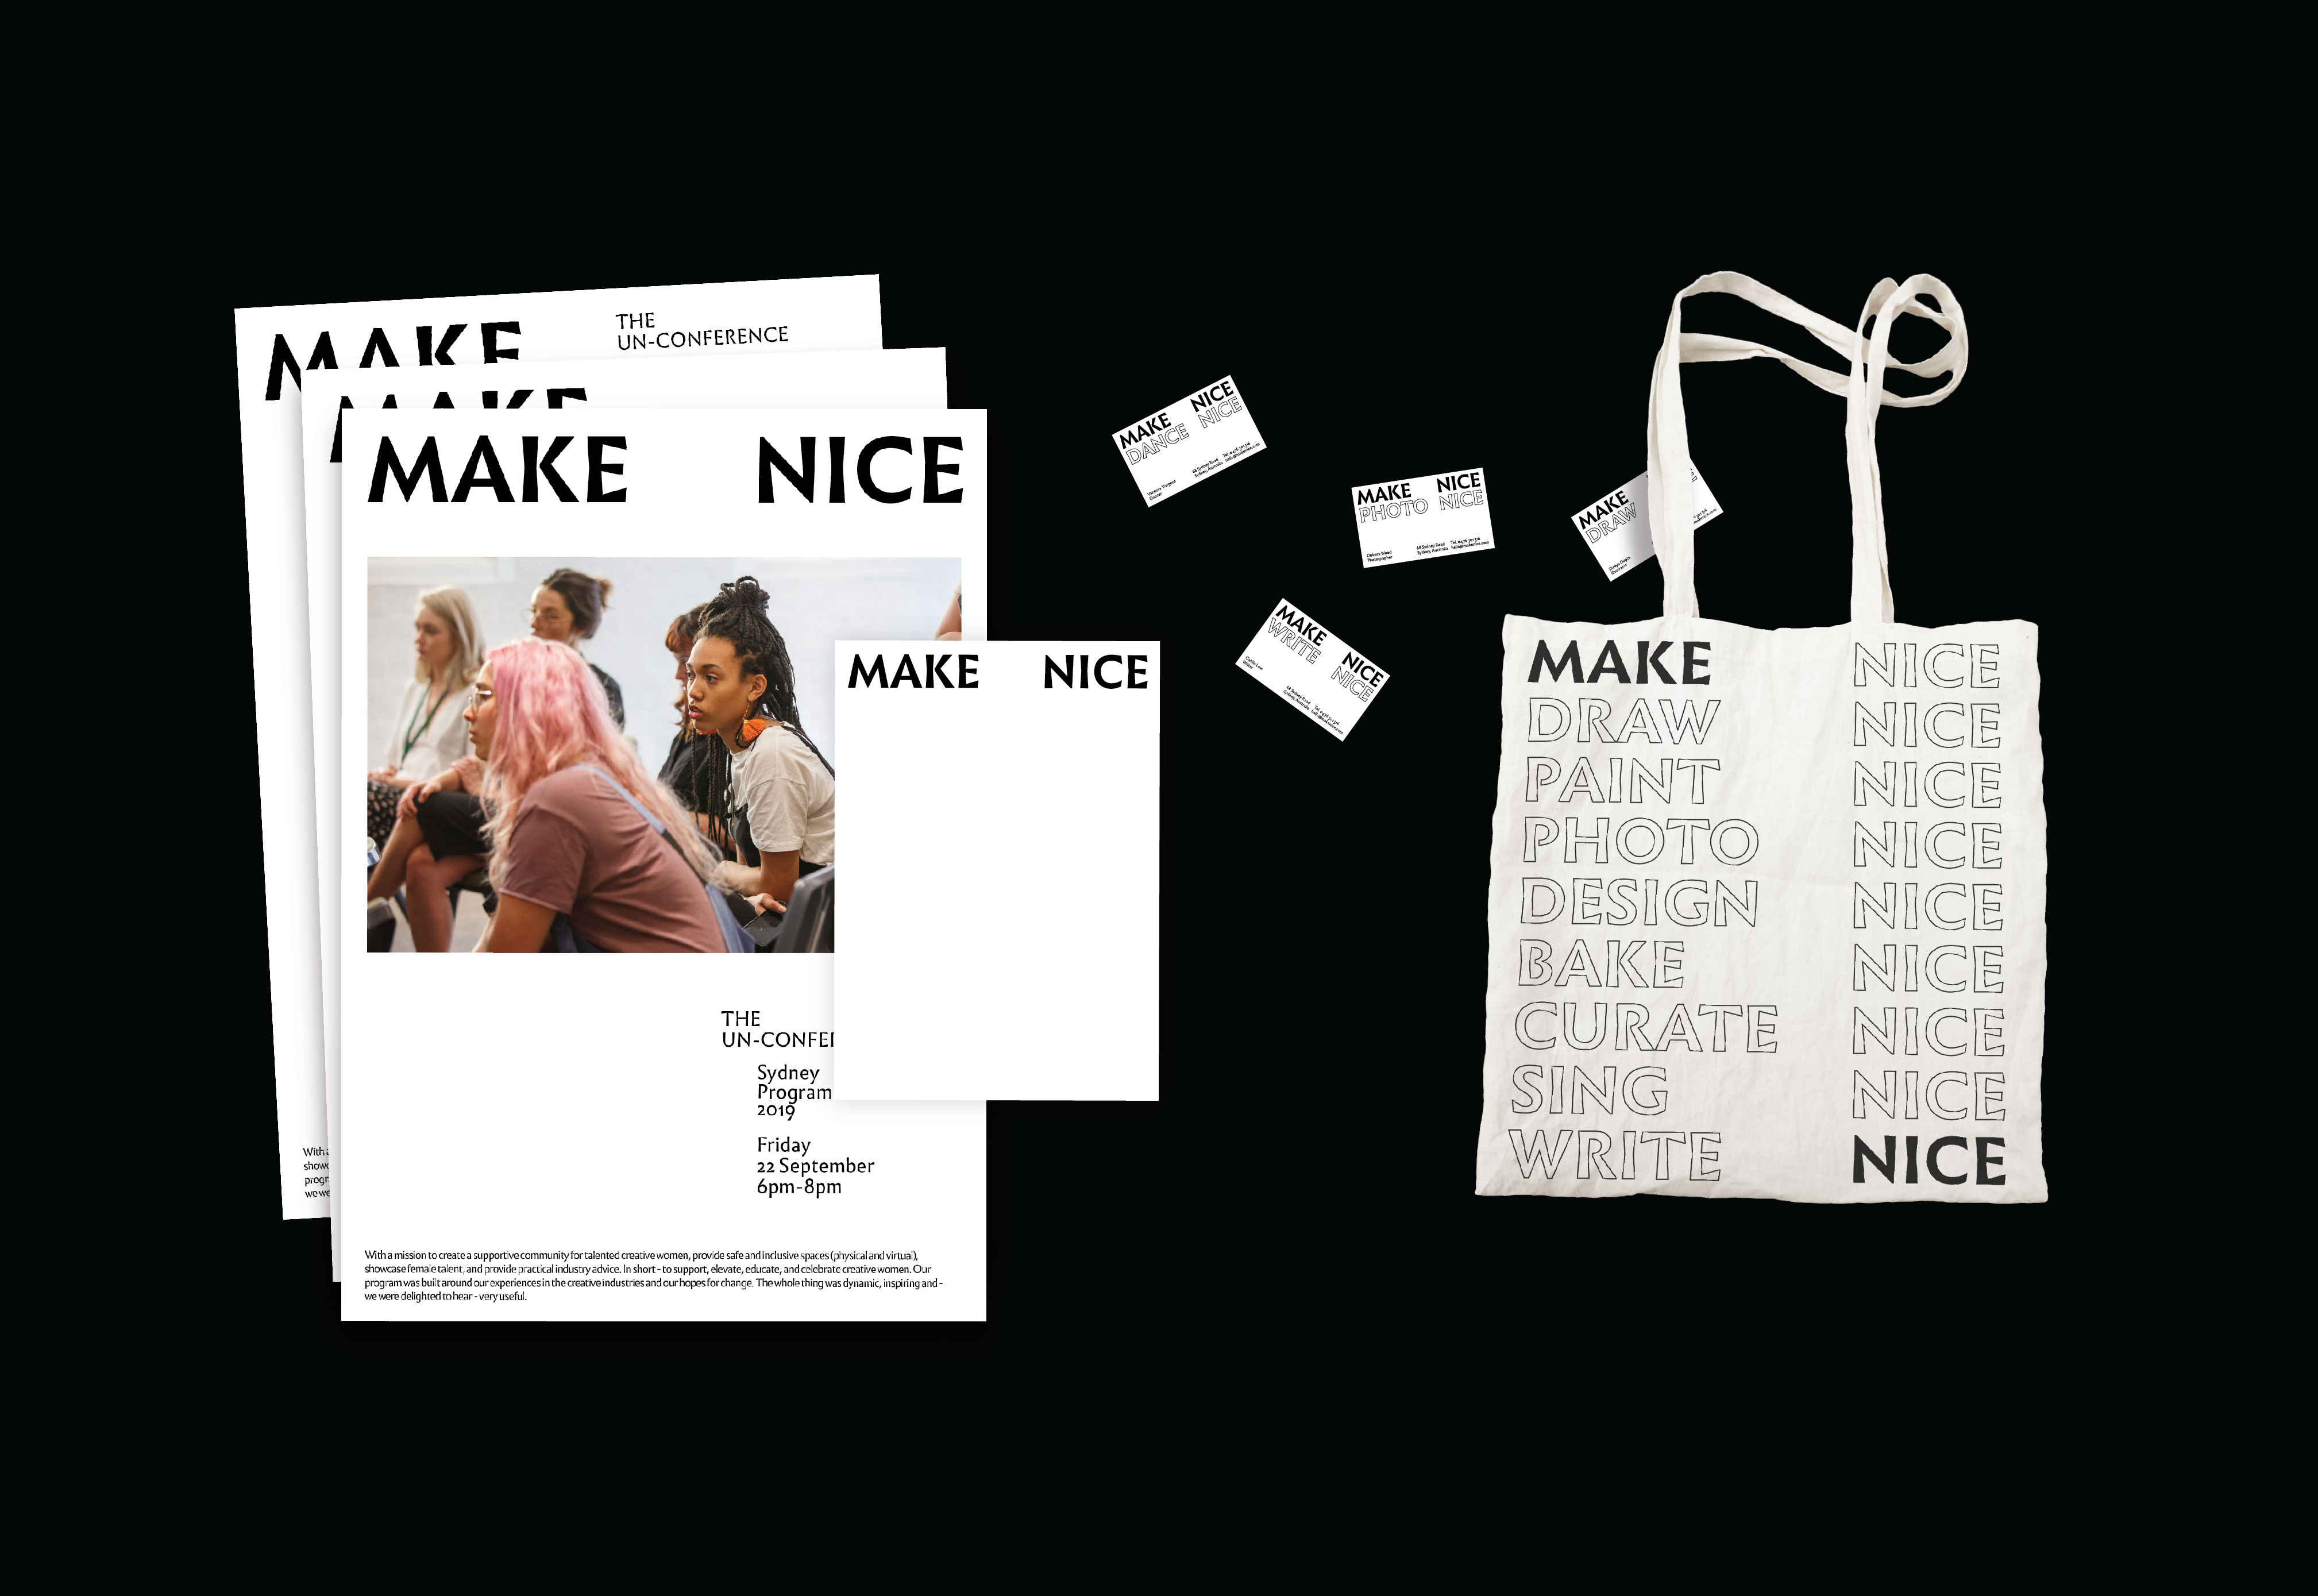 namecard-make nice-09